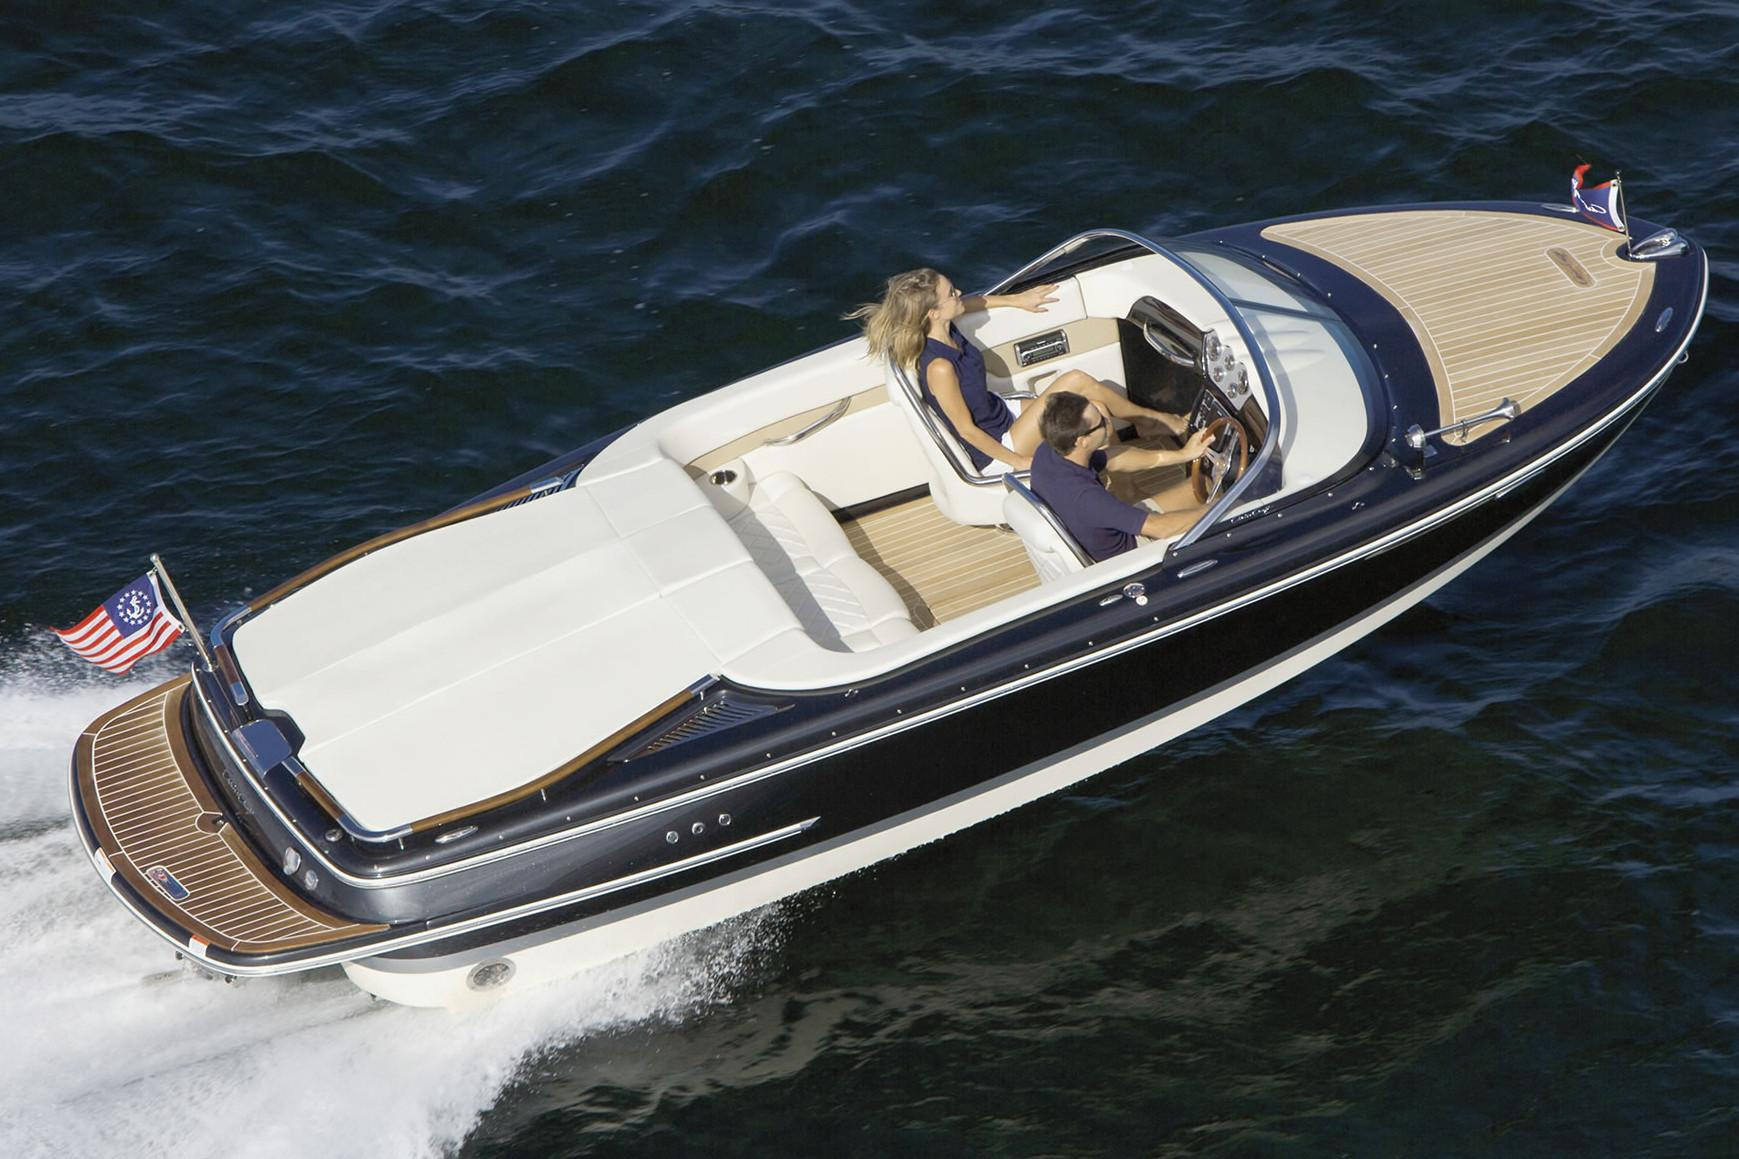 2019 Chris-Craft Capri 21 in Bridgeport, New York